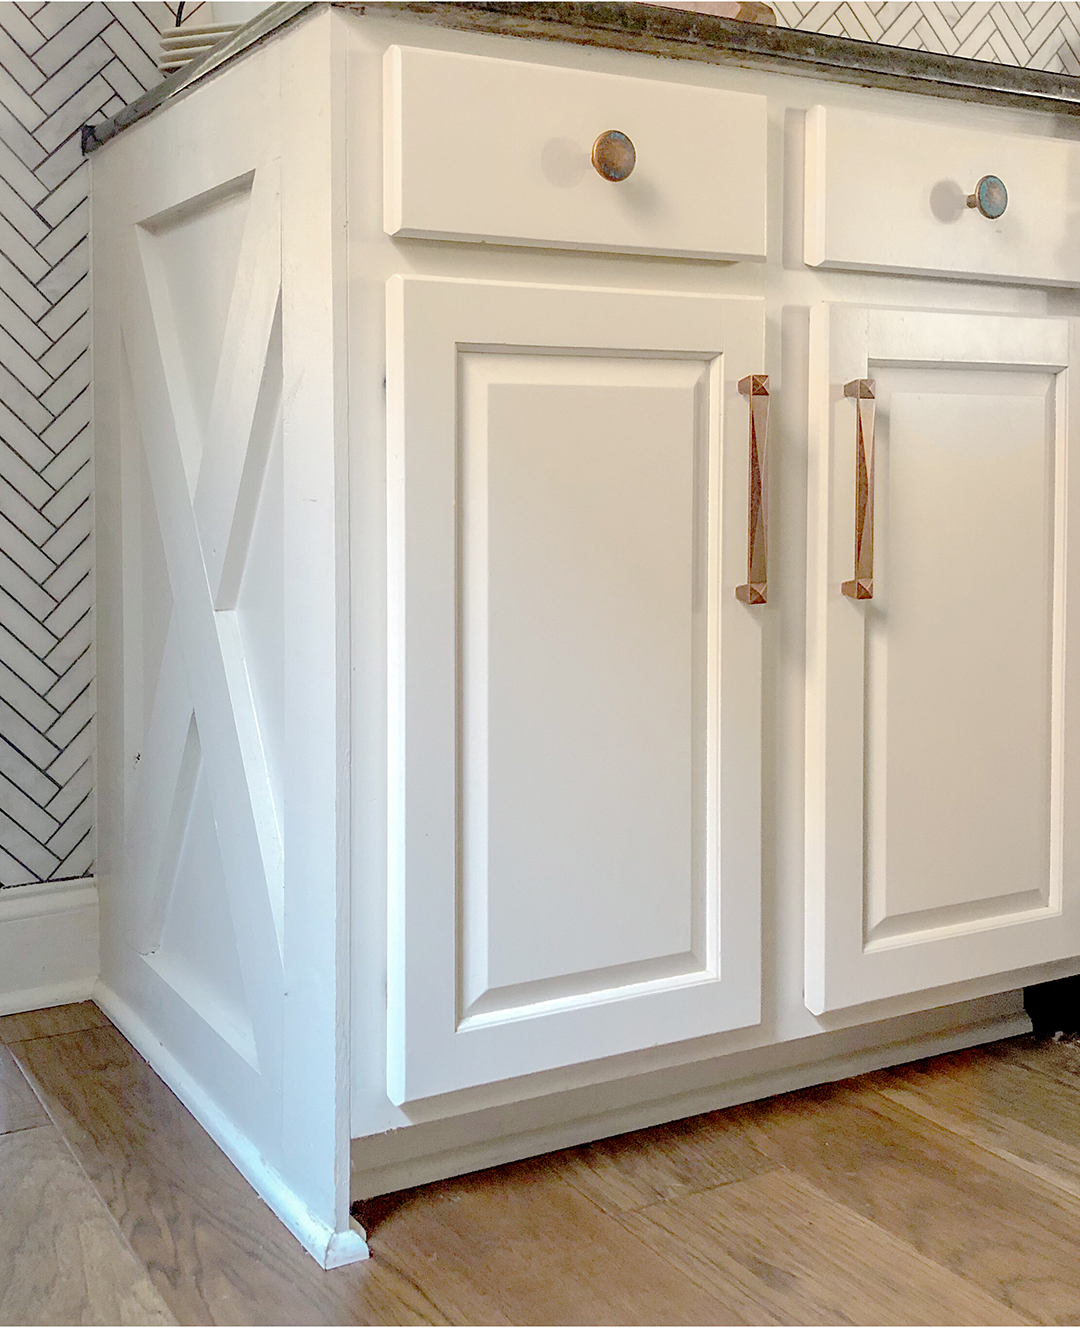 Farmhouse detail on white cabinets with copper pulls